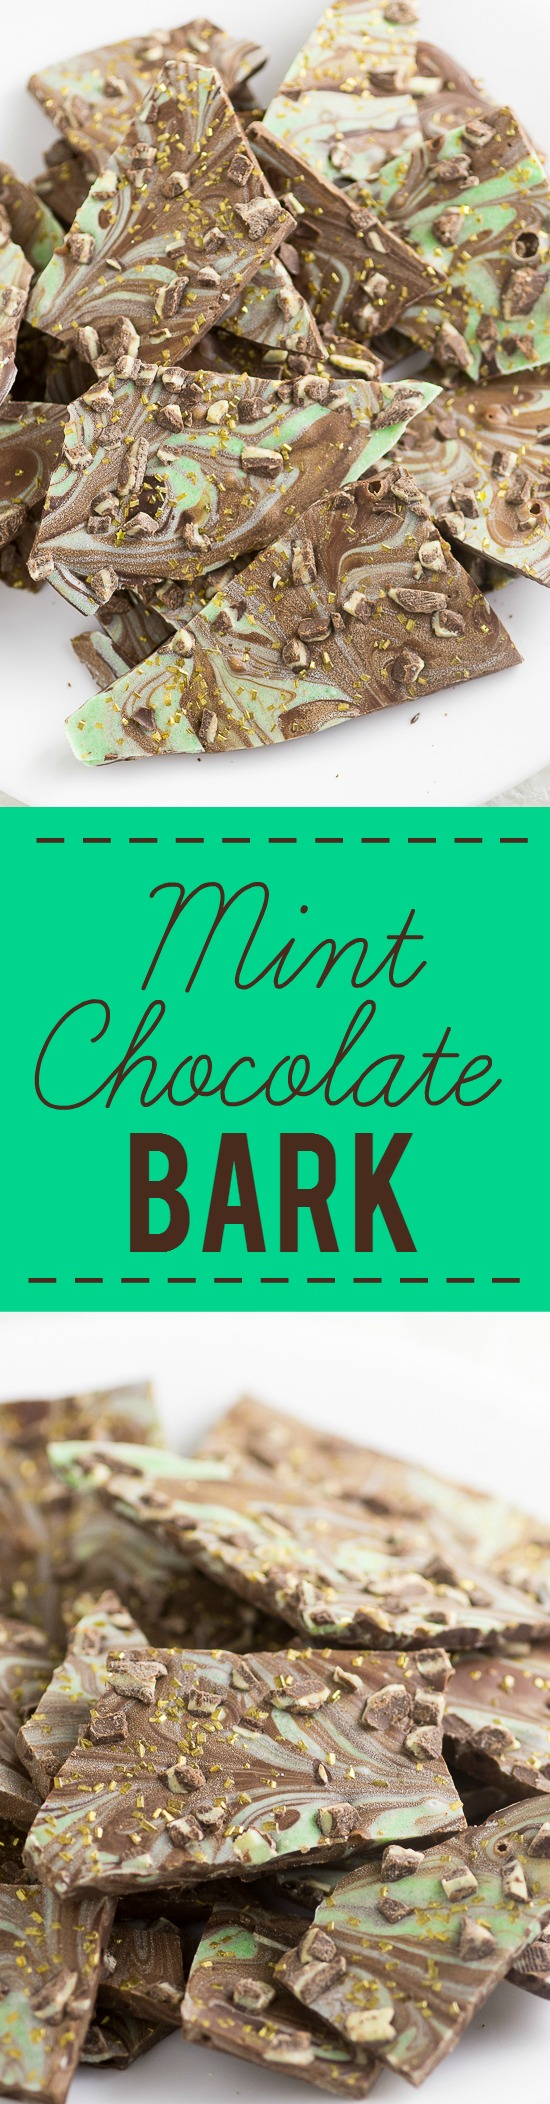 Mint Chocolate Bark Recipe - Easy Mint Chocolate Bark recipe with smooth, rich chocolate swirled with mint flavored white chocolate makes a quick, easy, and decadent dessert. YES! Love mint chocolate. This would be perfect for Christmas or St Patrick's Day.